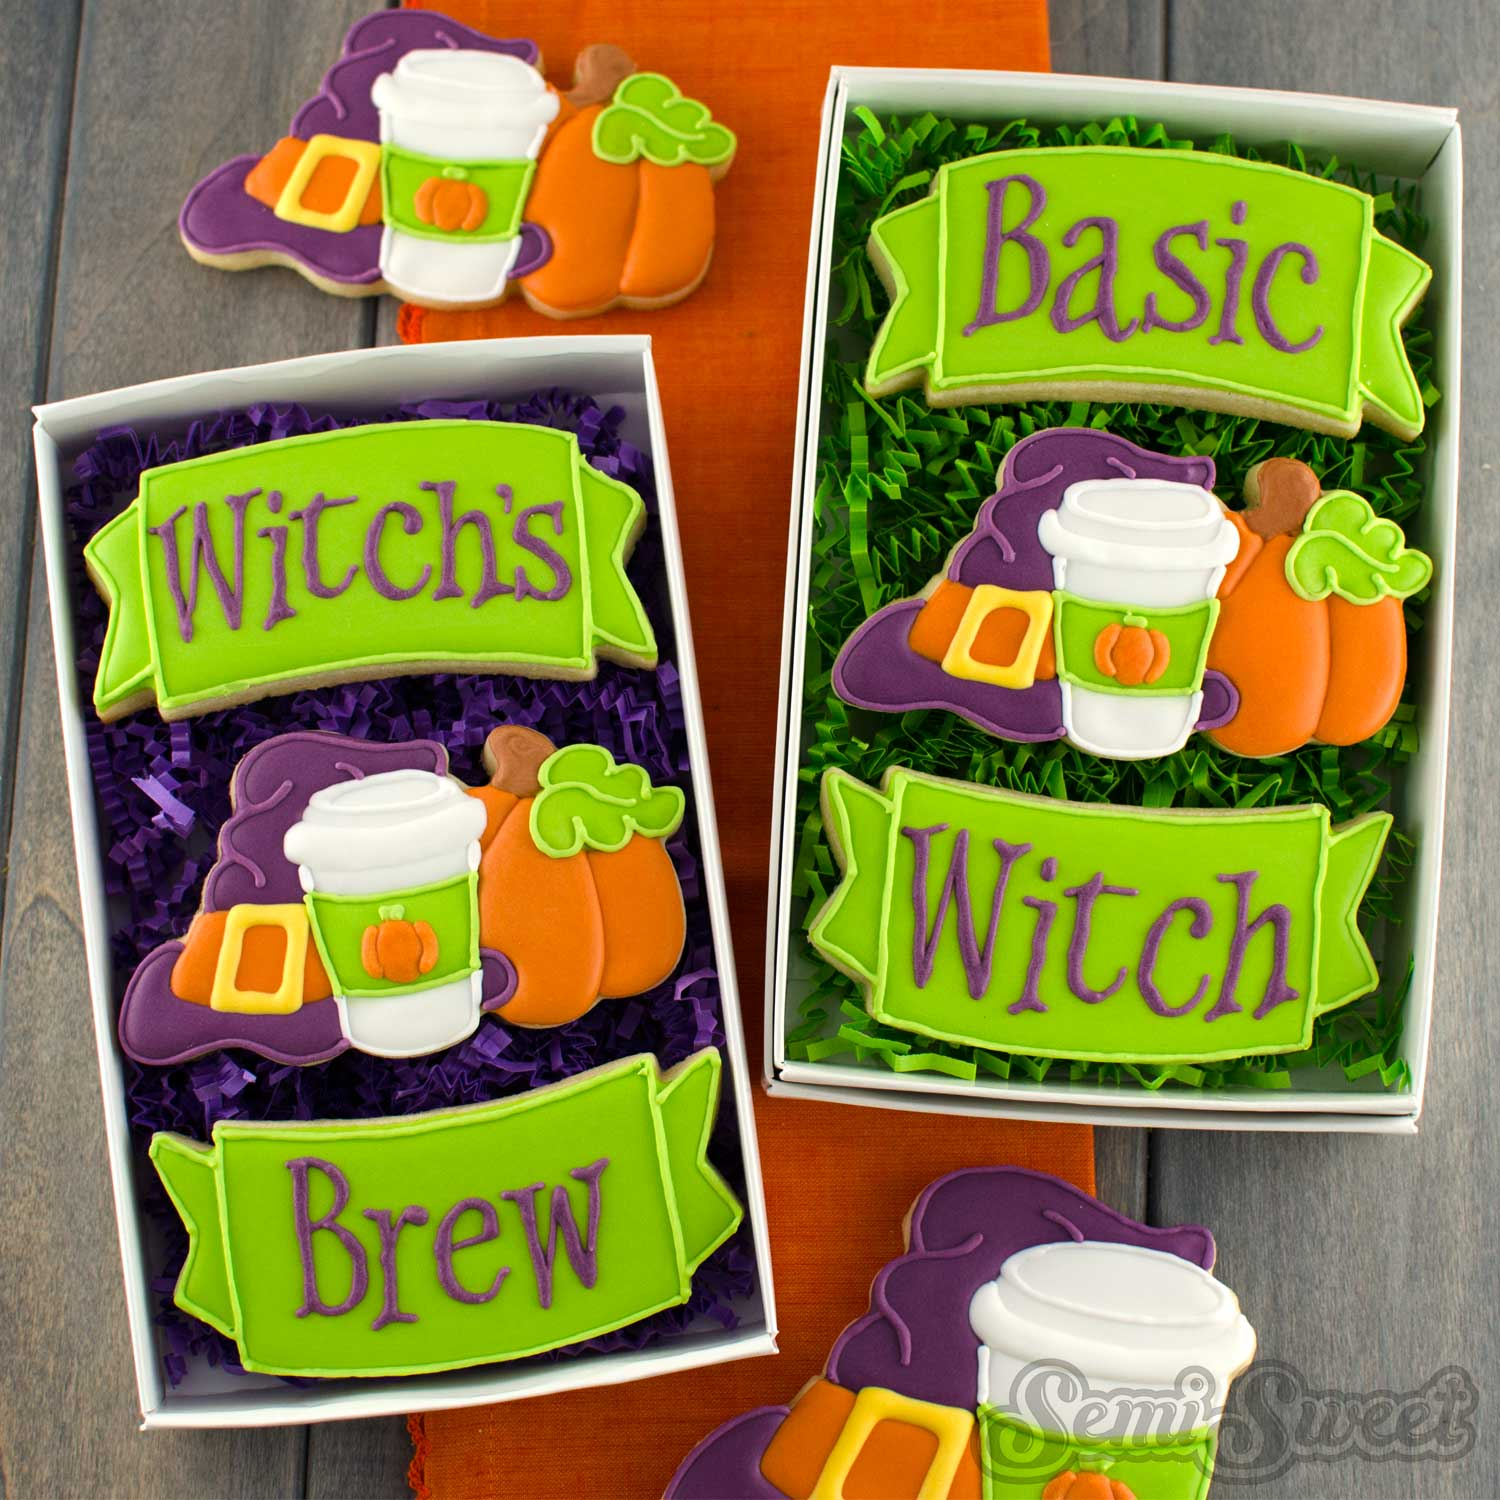 basic witch cookie sets